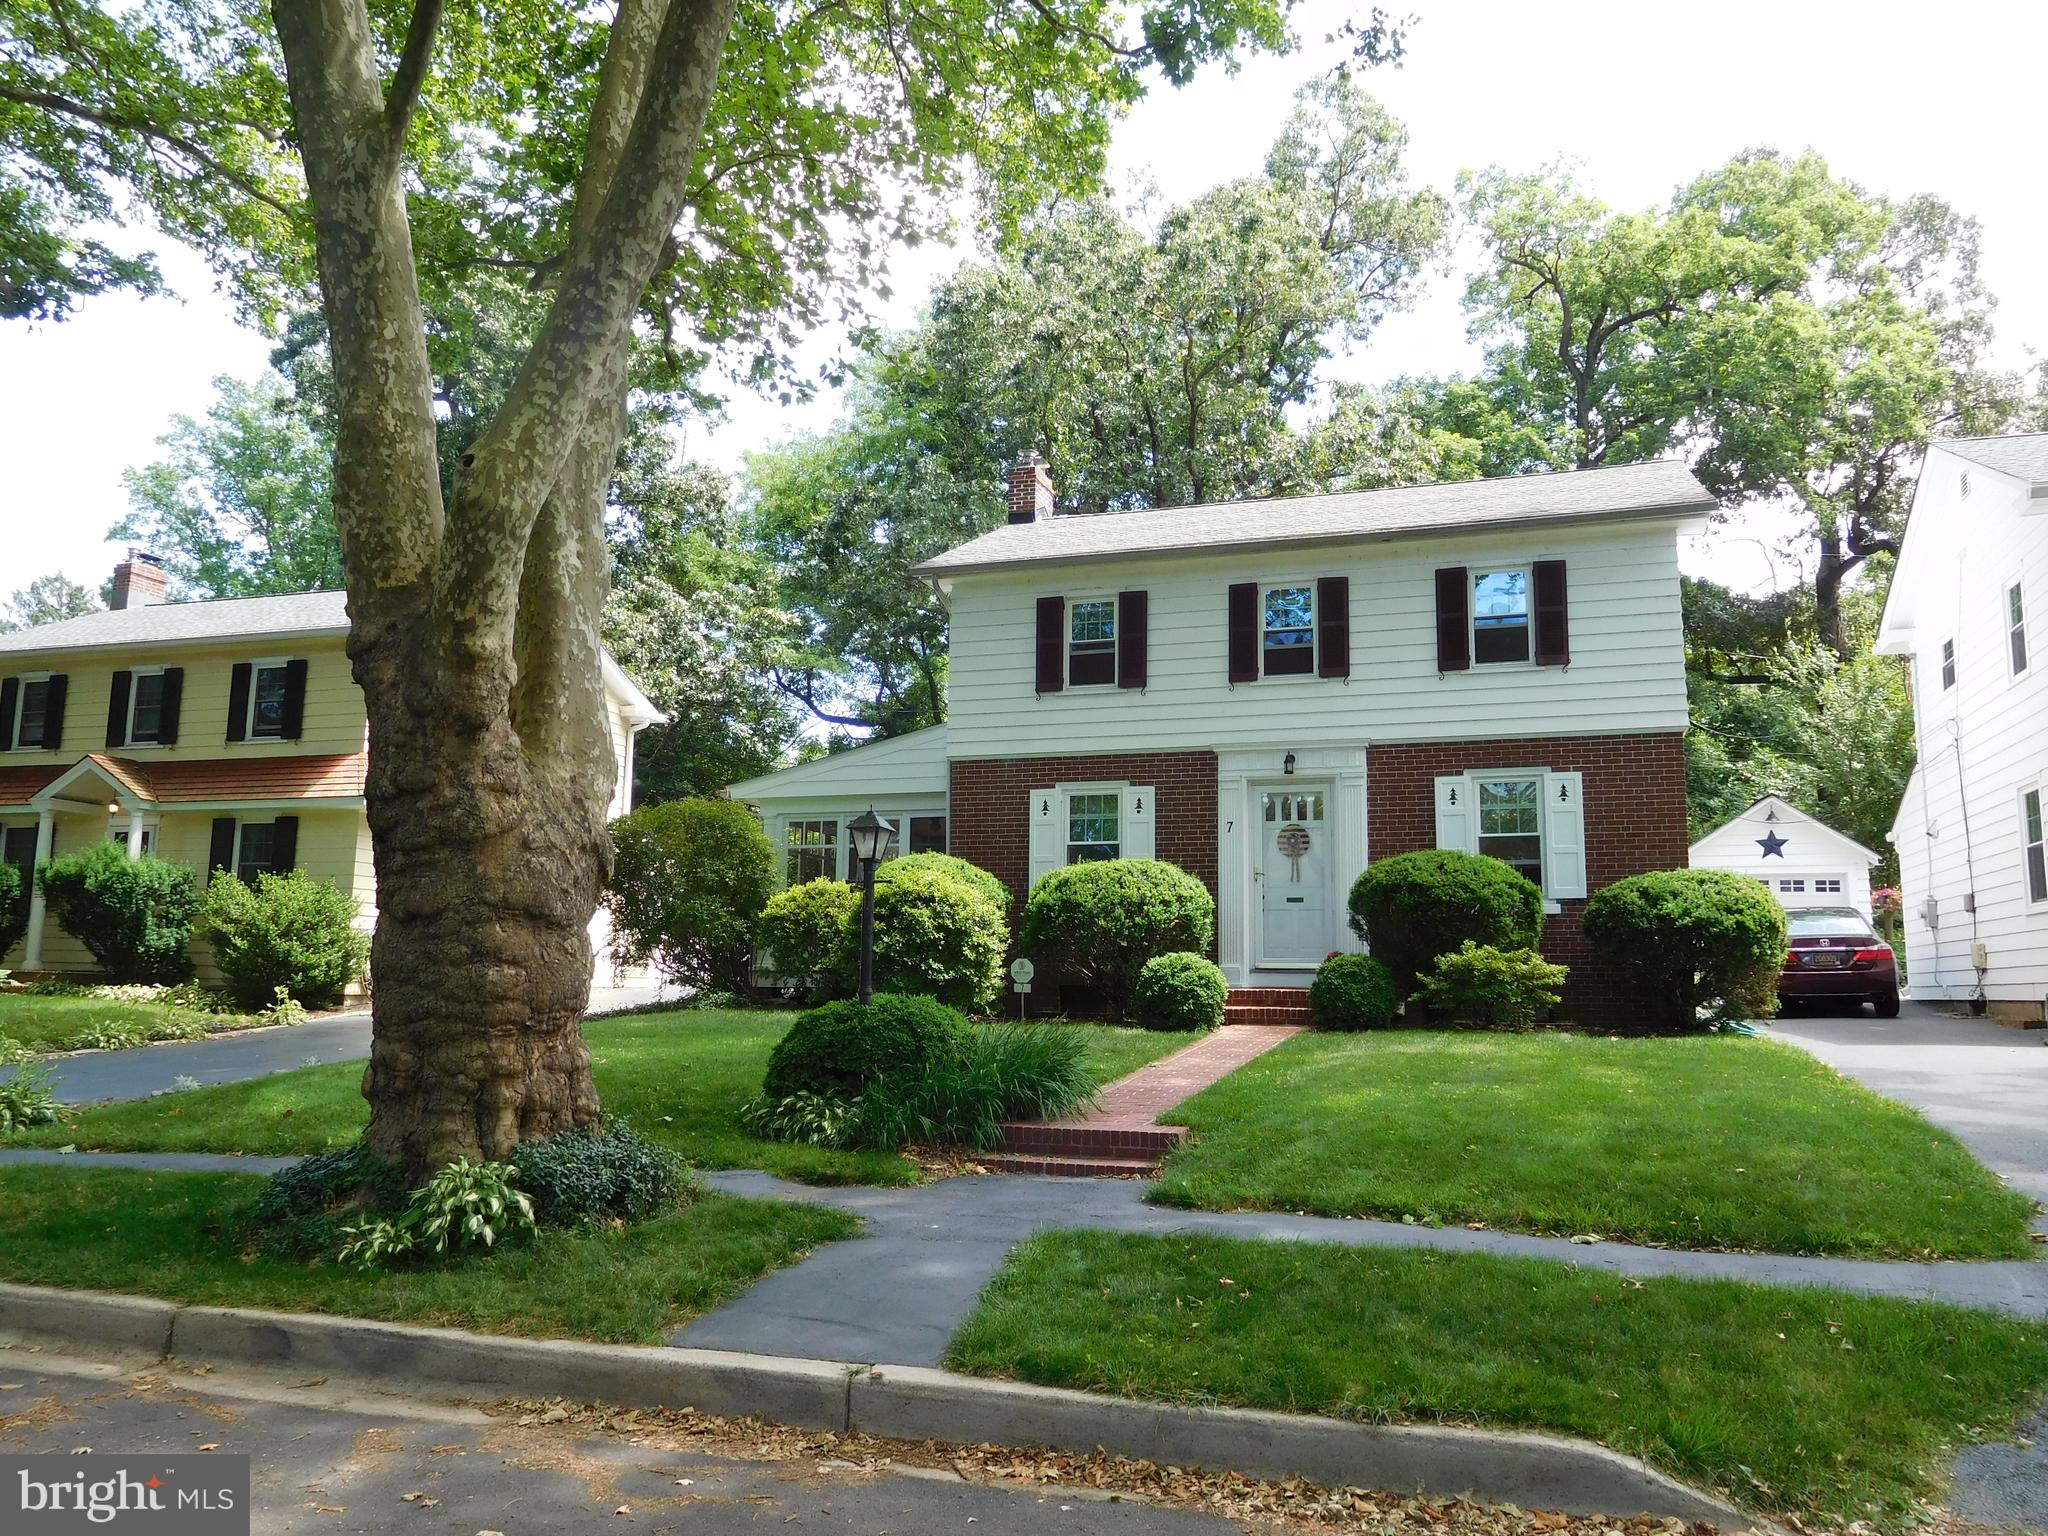 7 WIER AVENUE, WILMINGTON, DE 19809